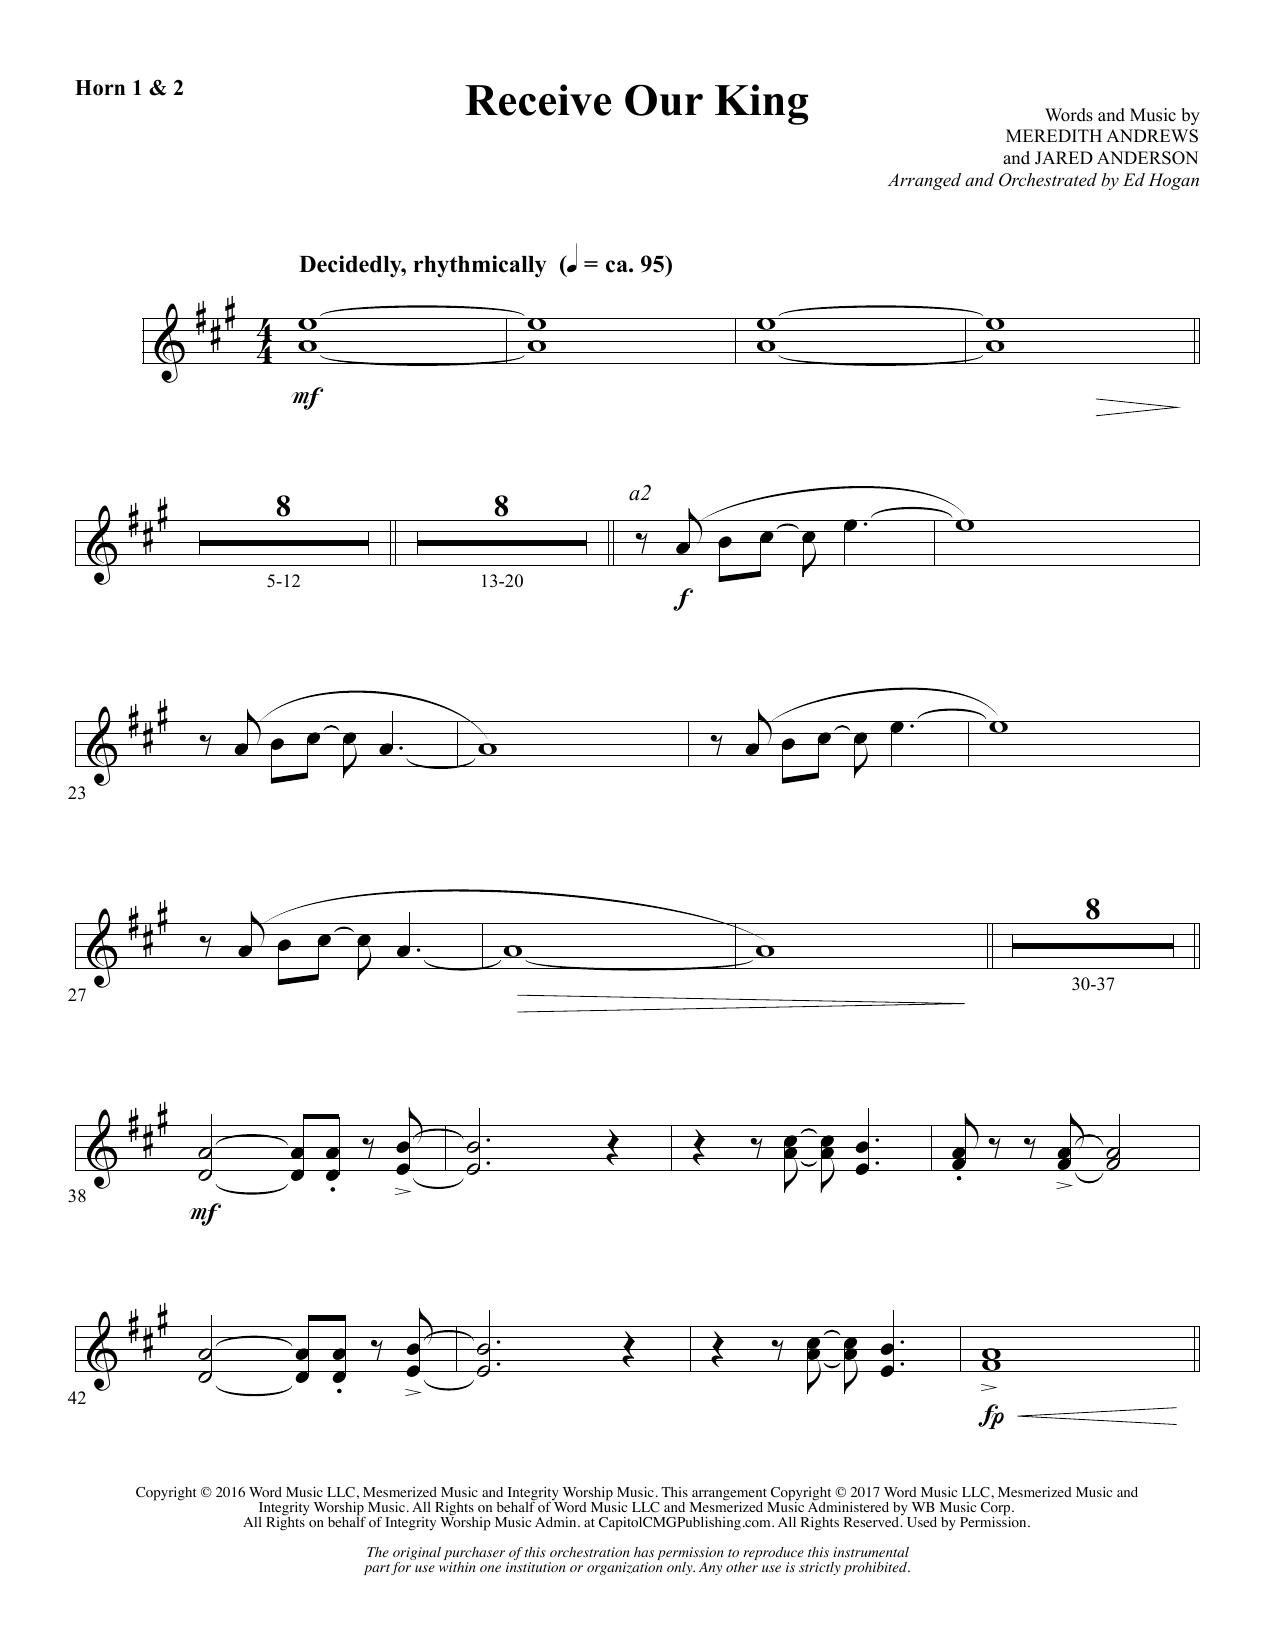 Ed Hogan Receive Our King - F Horn 1 & 2 sheet music notes and chords. Download Printable PDF.